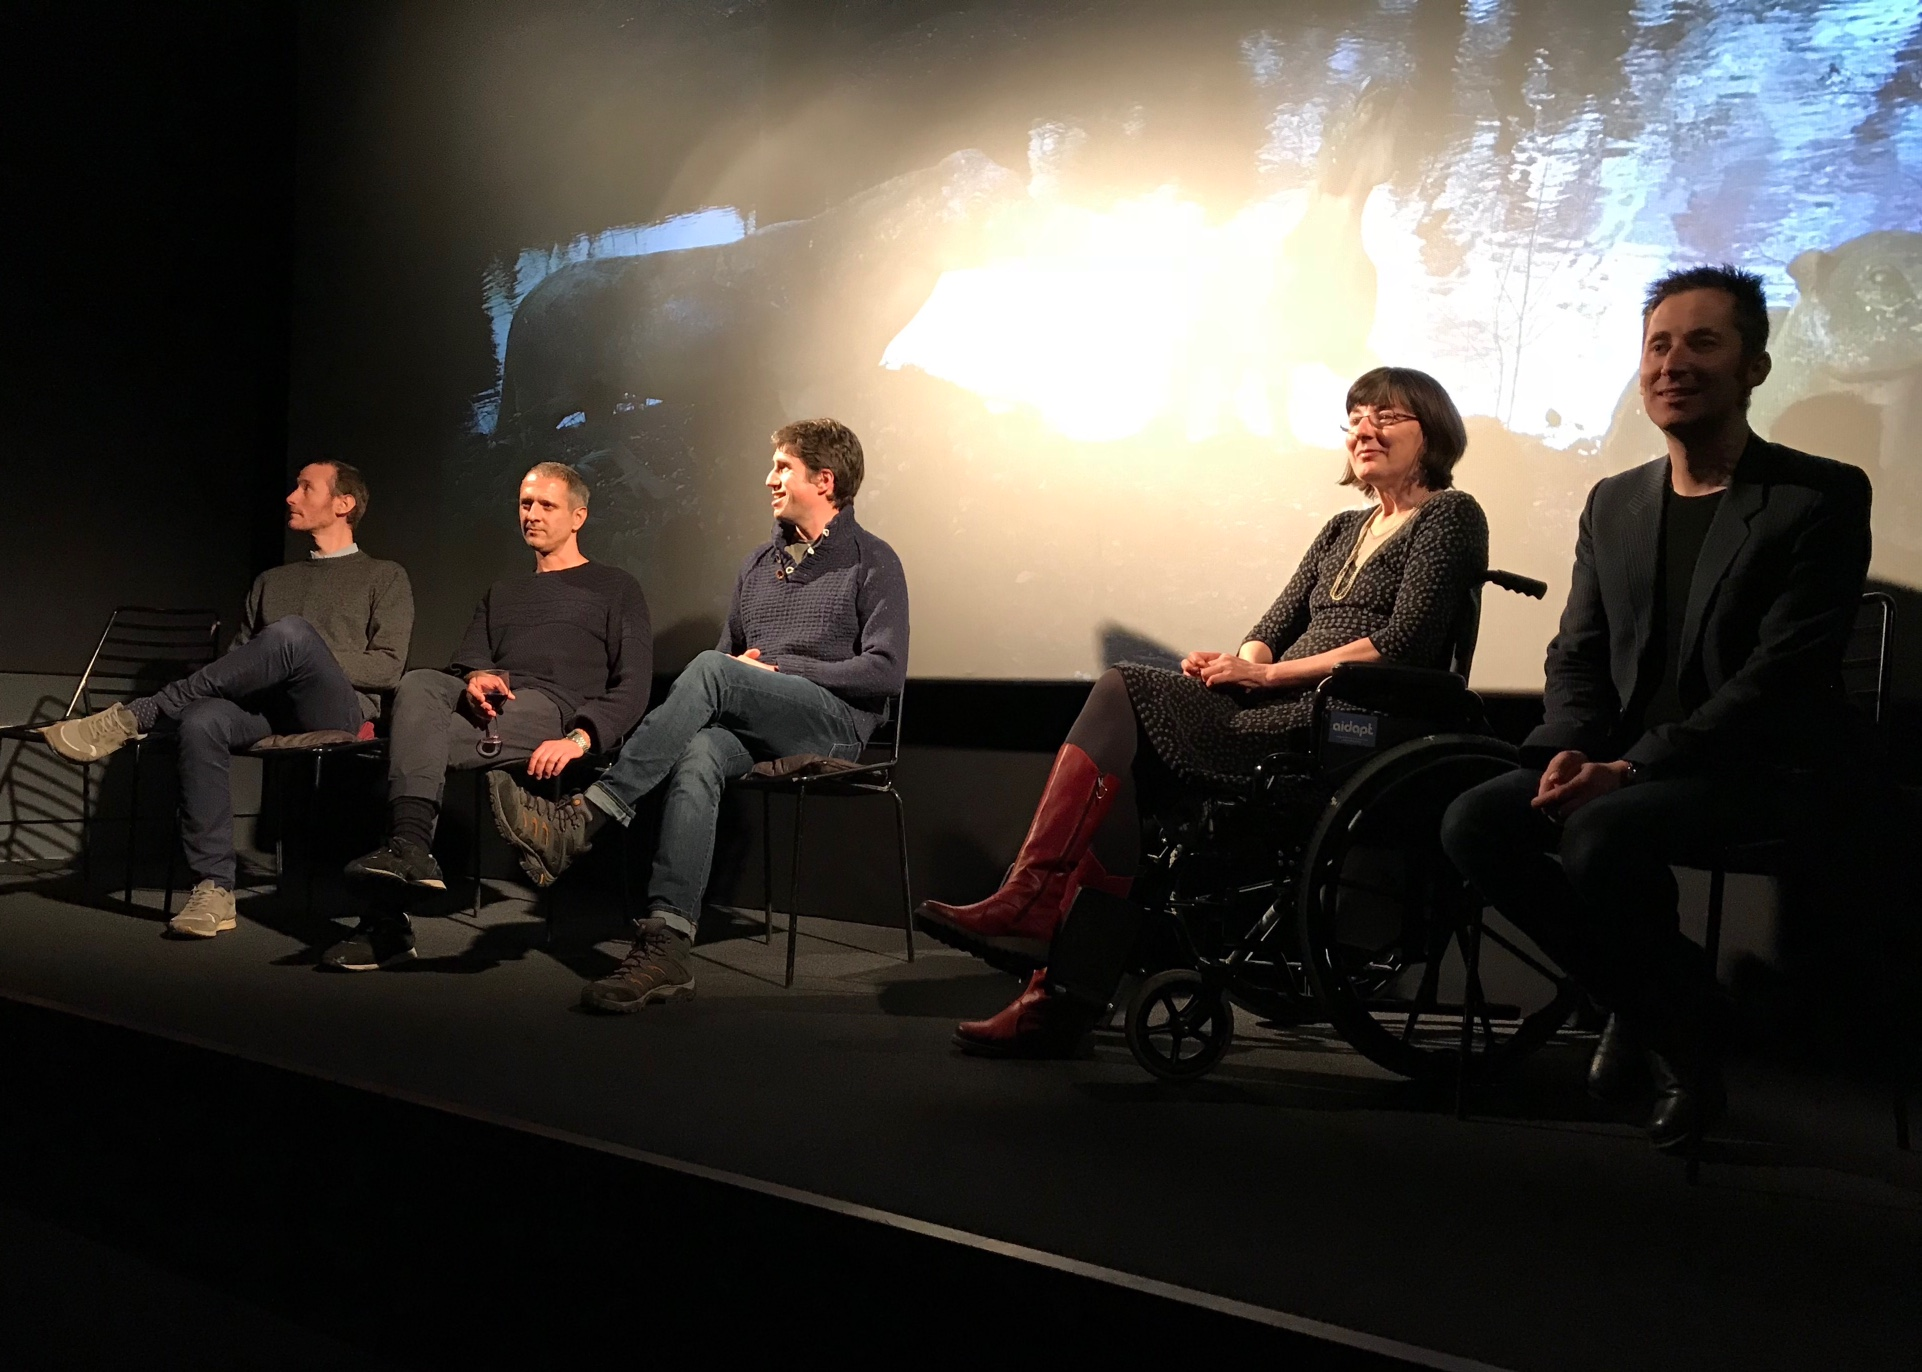 Film screening shot 2 – Q&A